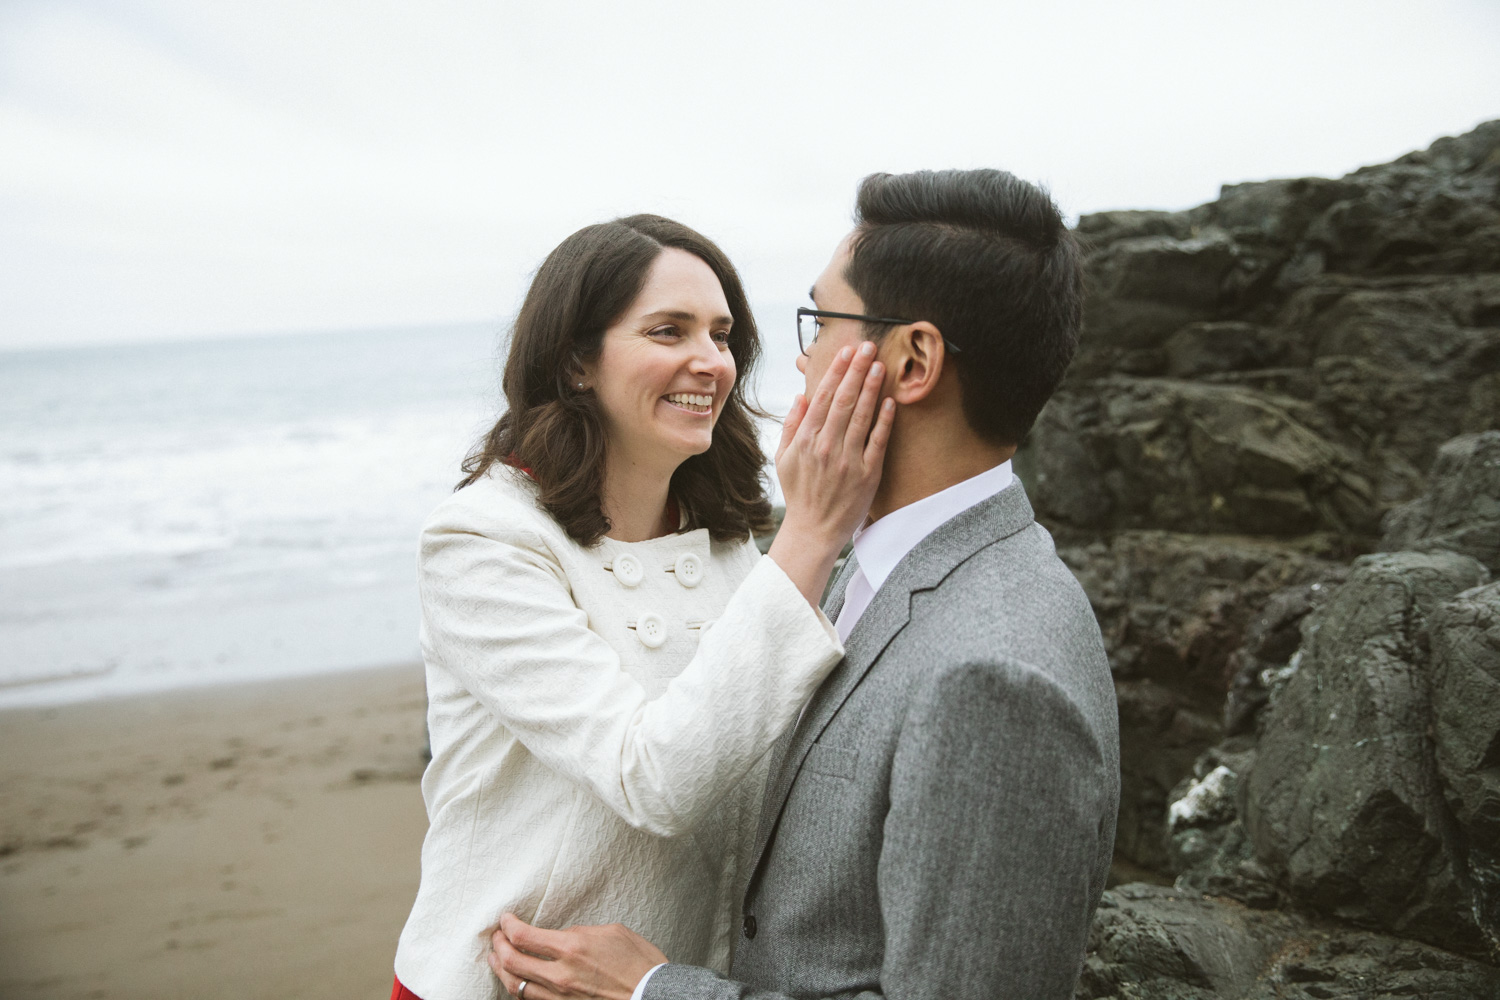 marin-headlands-engagement-elopement-photographer-9.jpg